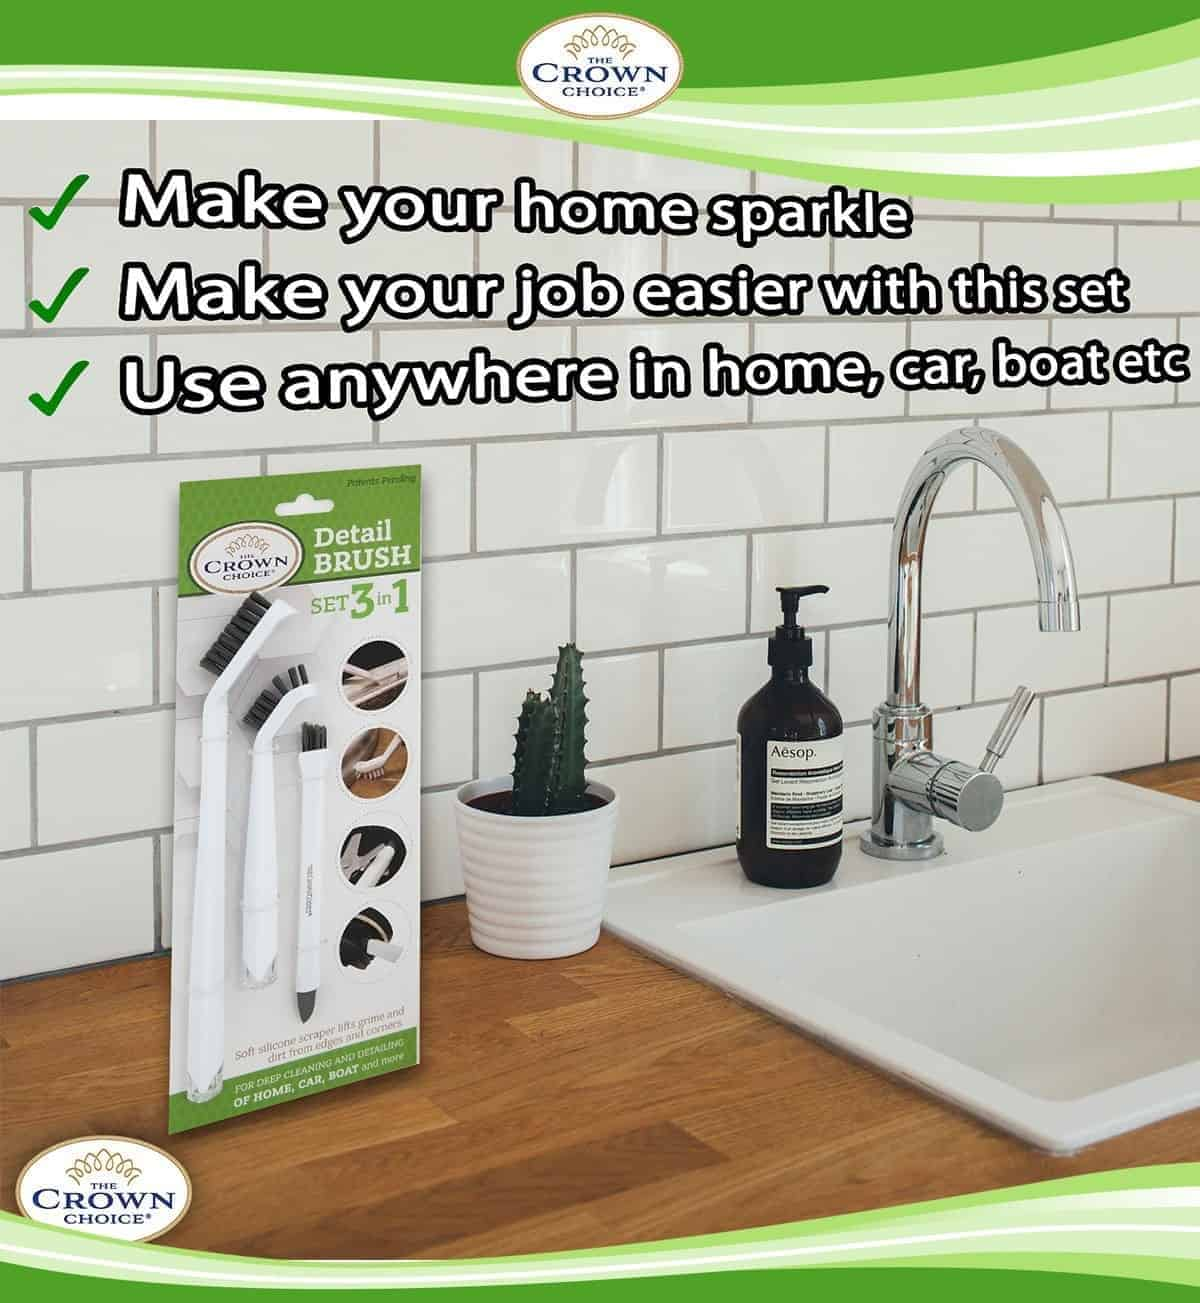 Buy Online Long Handle Scrub Brush Best 3 In 1 Brush For Shower Cleaning Tiles And Deep Clean Brush The Crown Choice Free Shipping